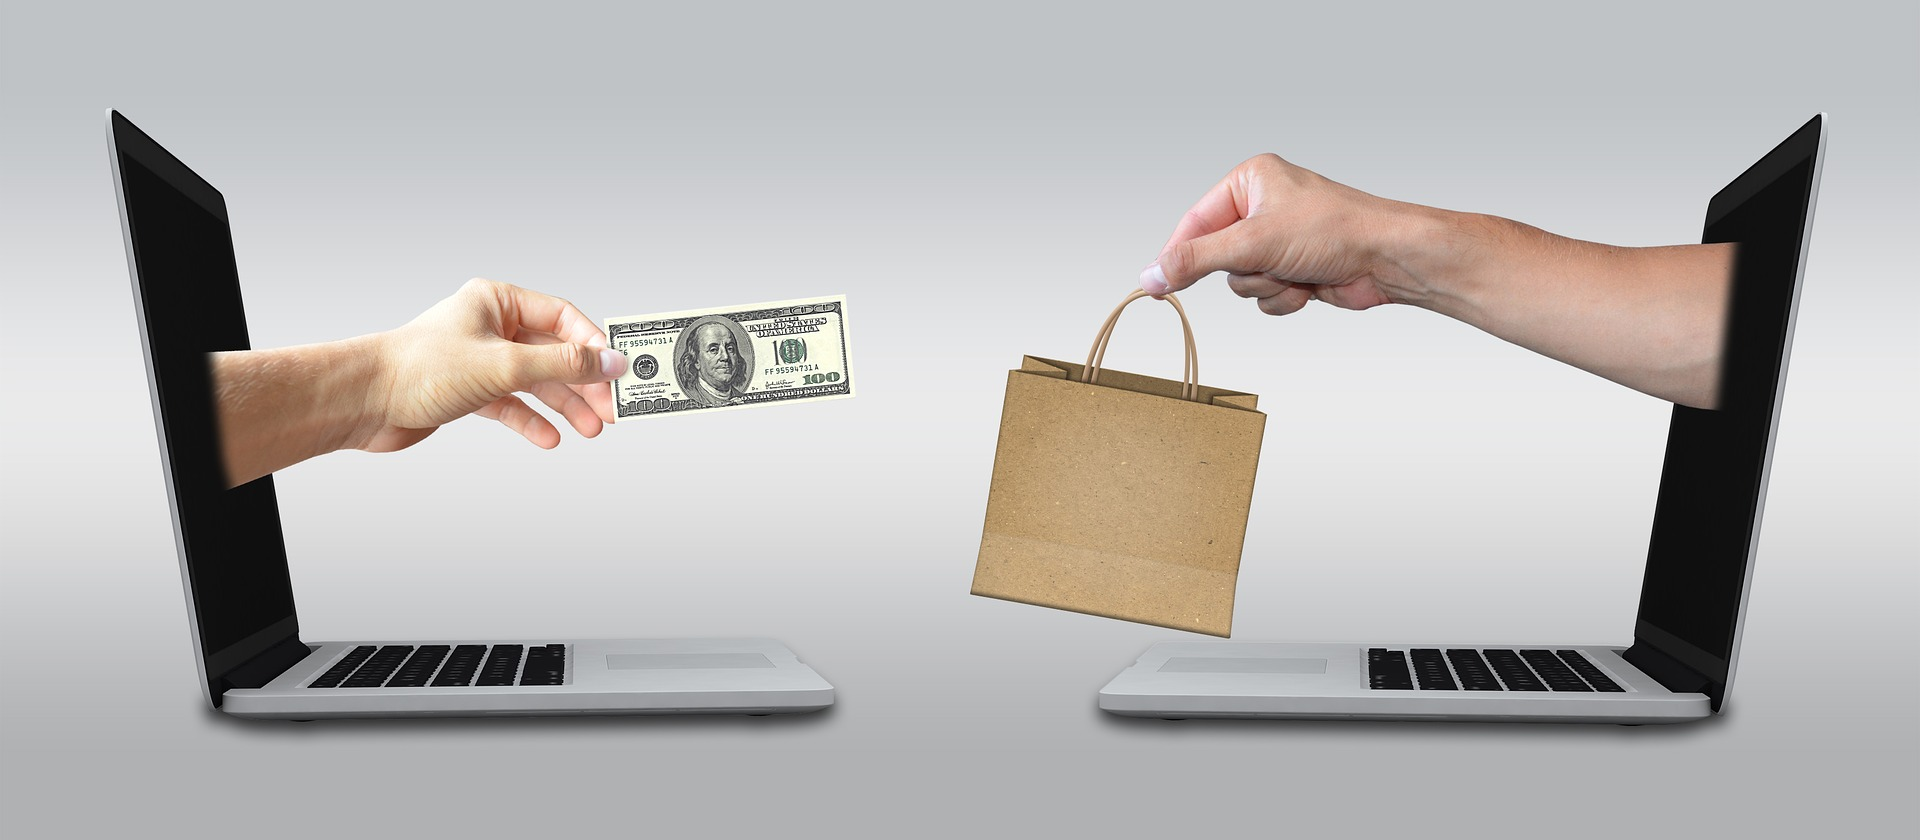 The Working Process Of Fraud Chargeback